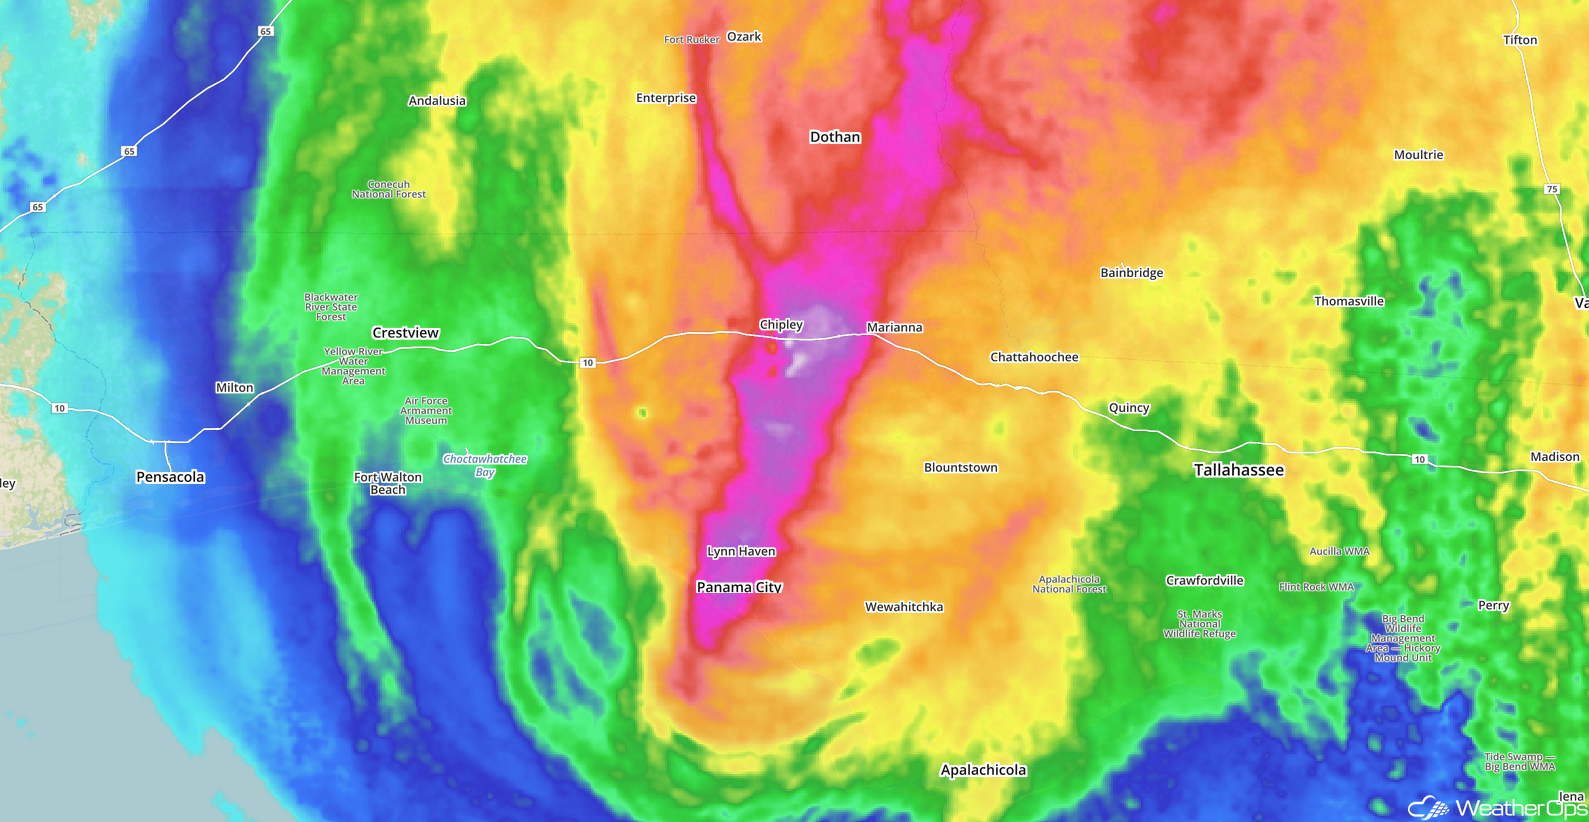 Rainfall totals from Hurricane Michael 10/10/18